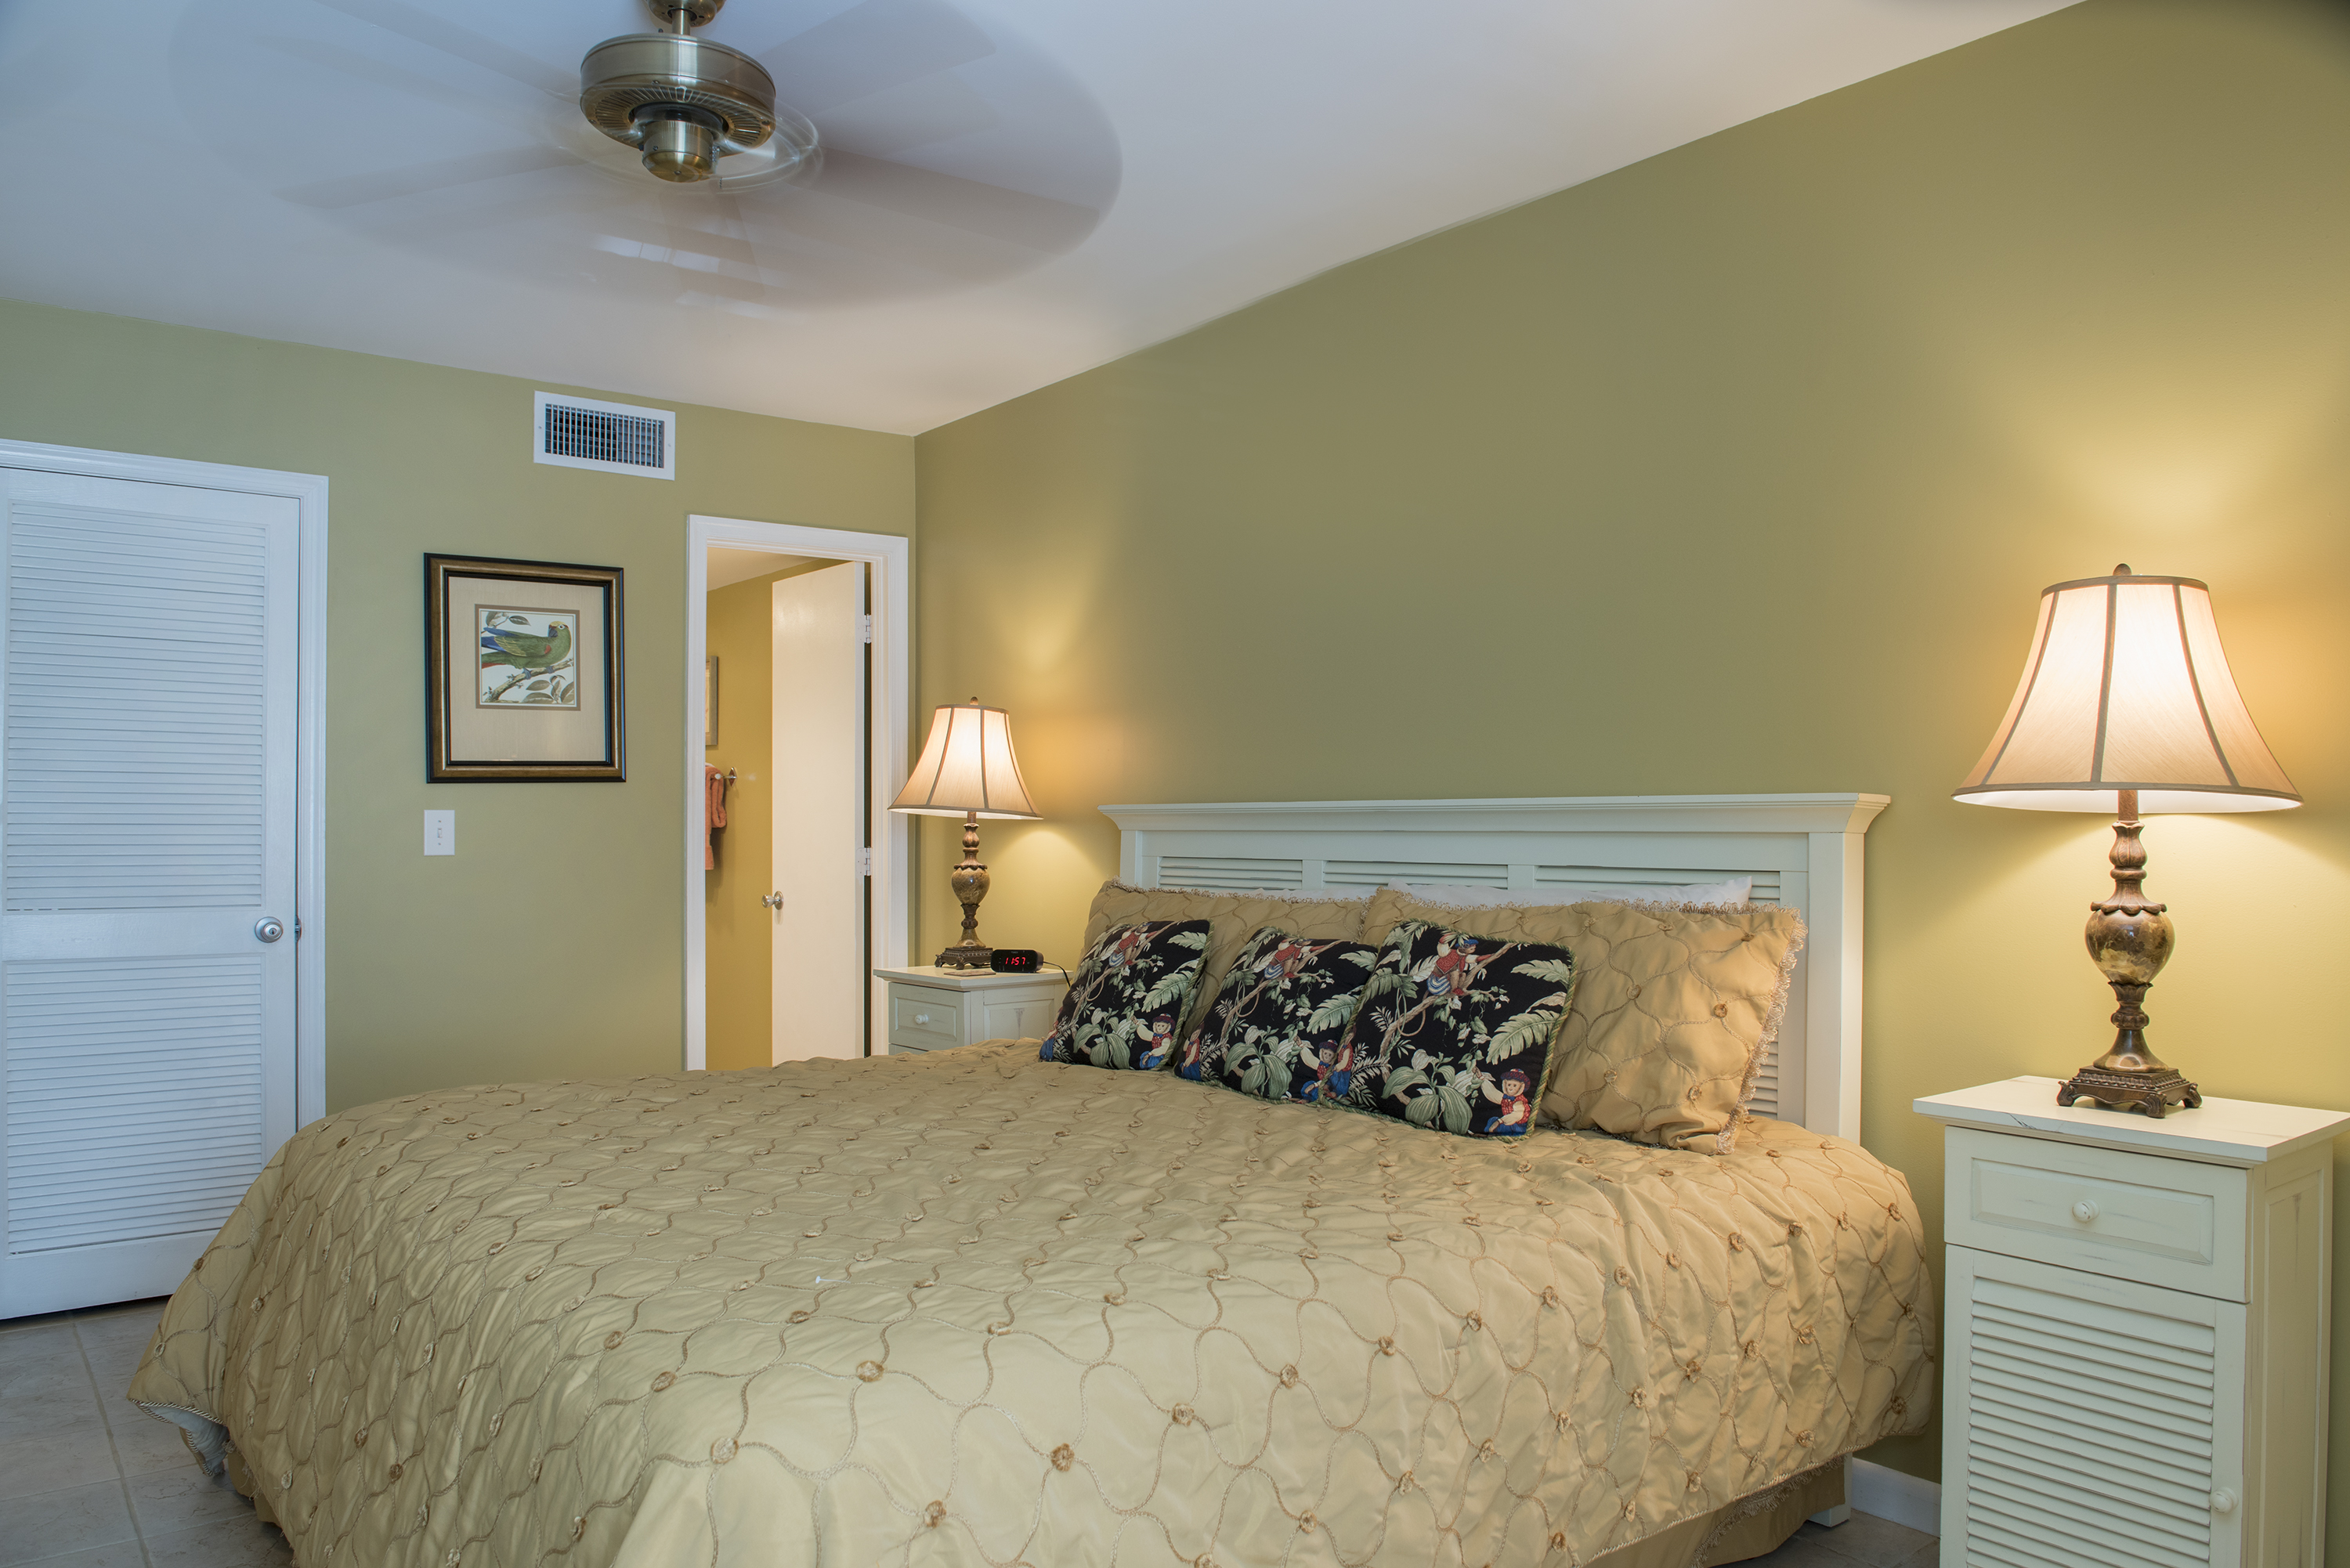 The master bedroom has a king bed and en-suite bathroom.